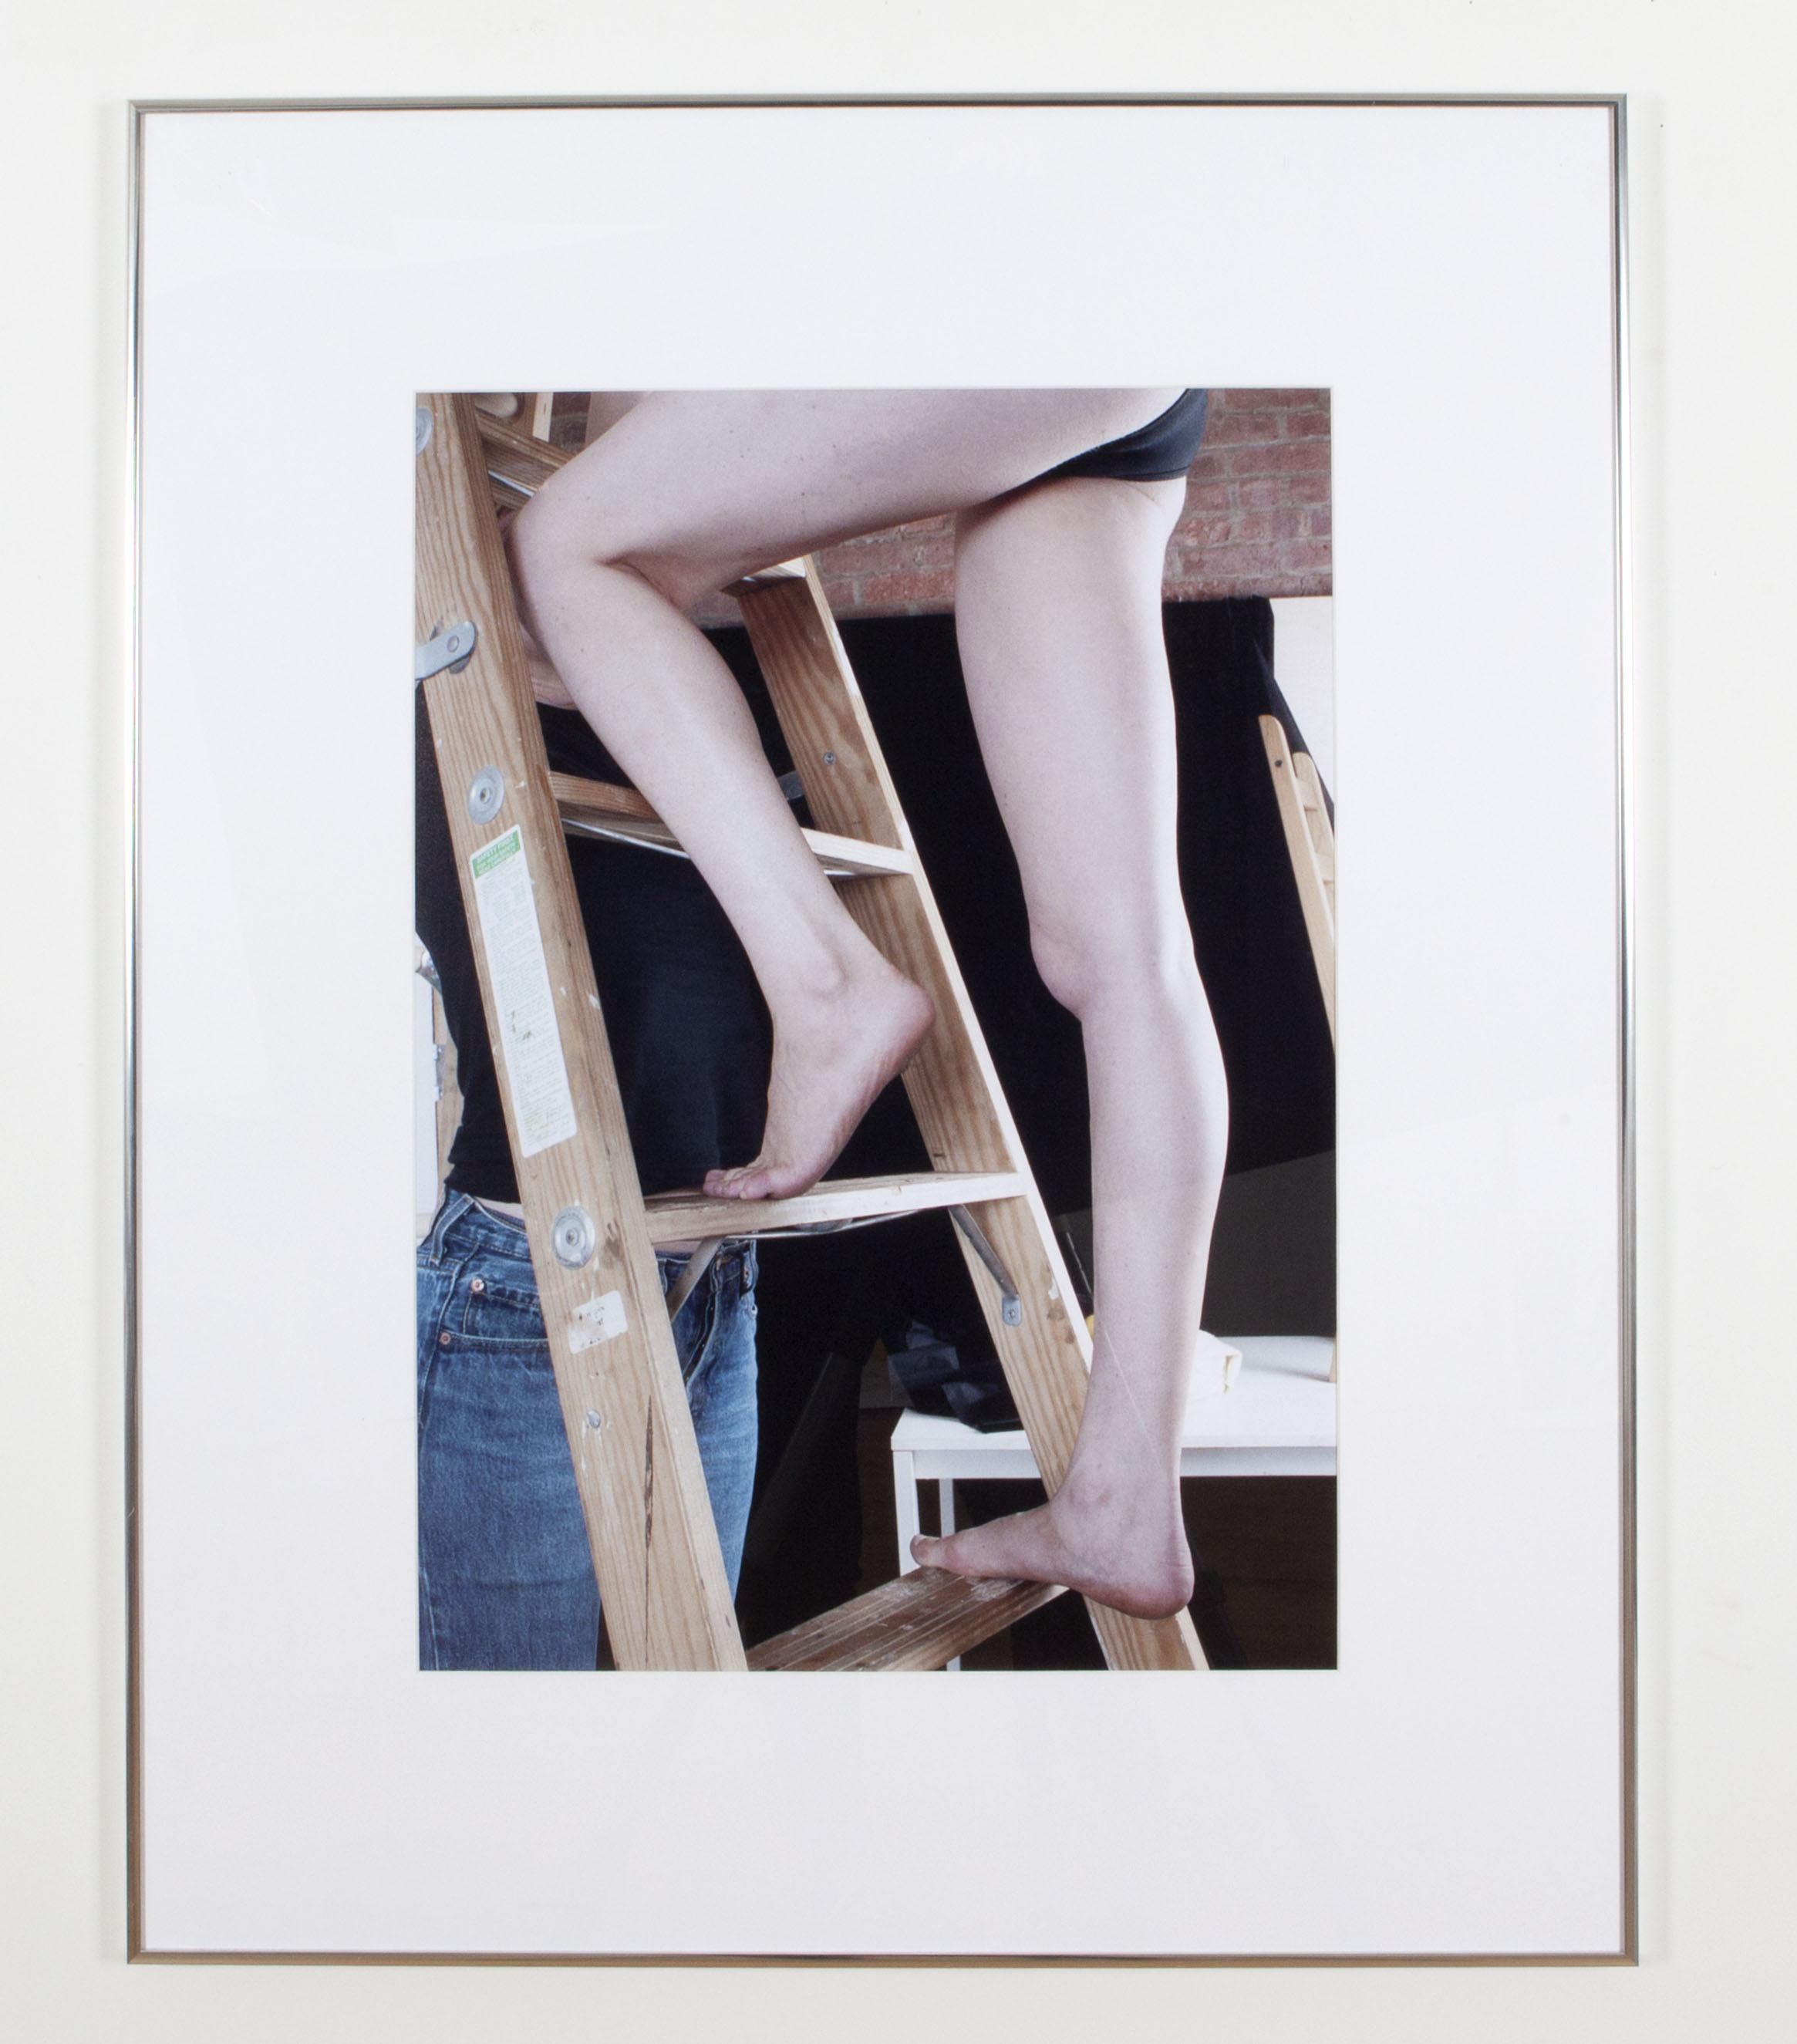 Ladder, Legs, Spot,  2017, inkjet print, 29 x 38 inches framed